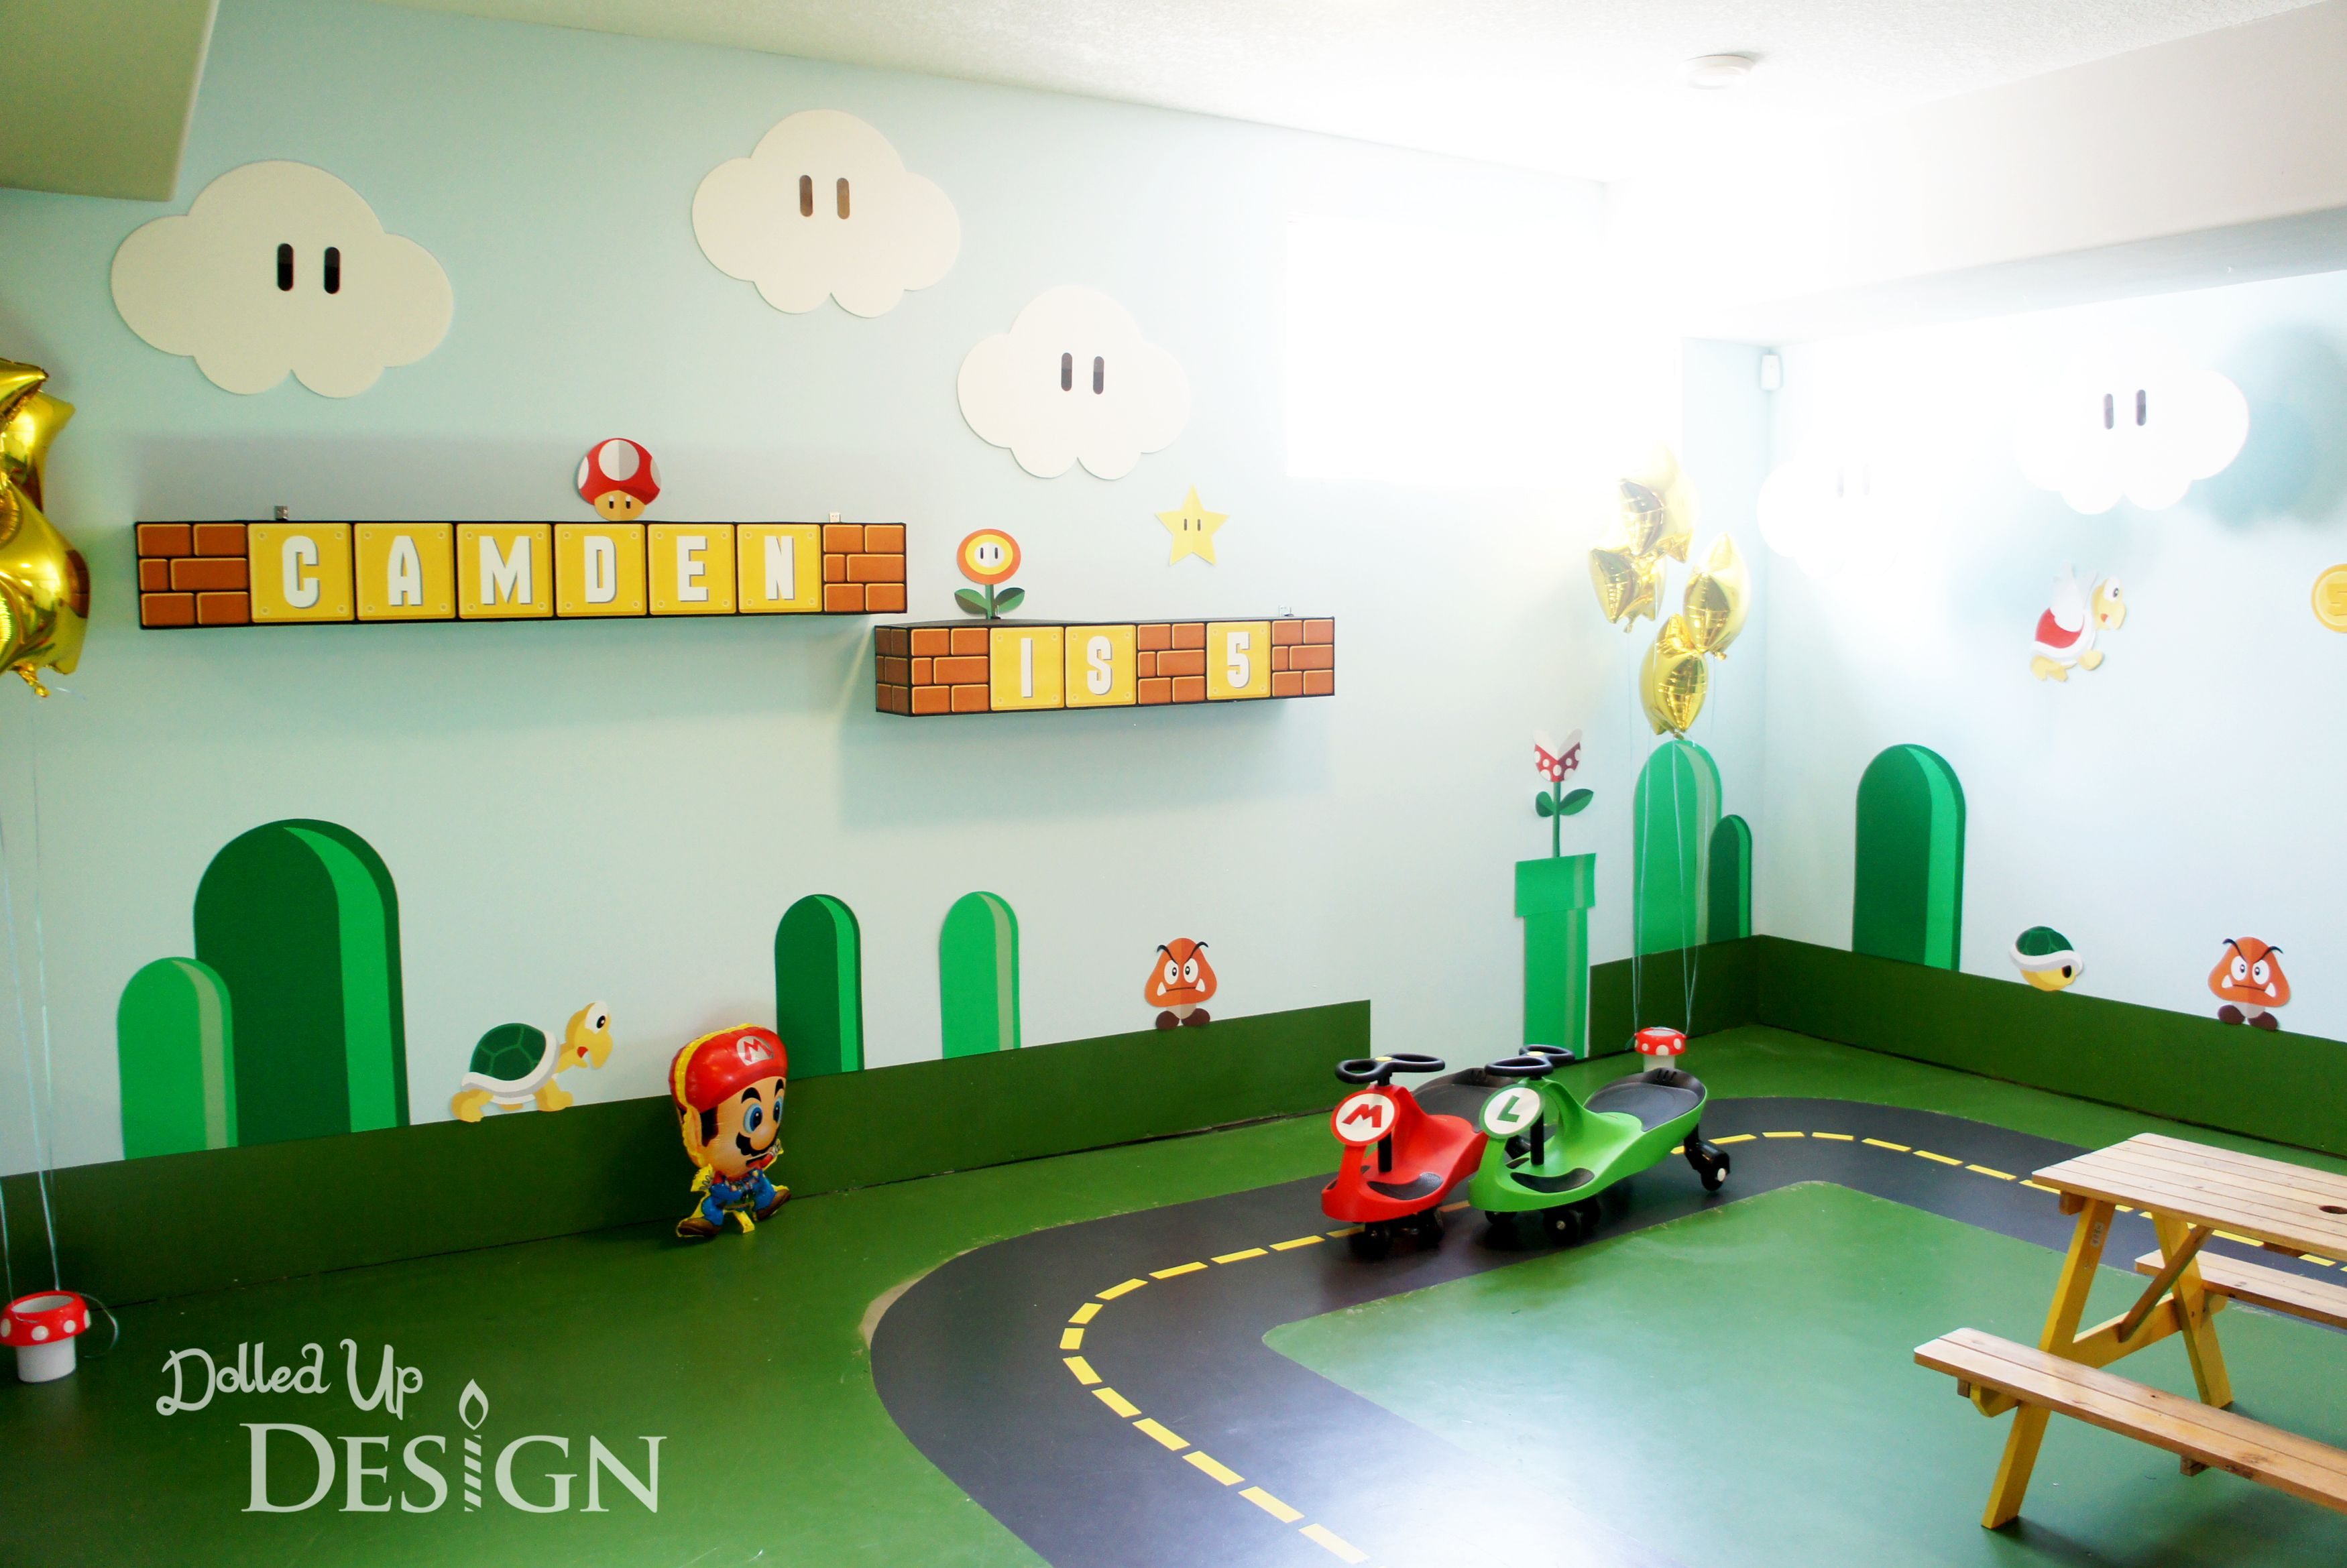 Wall Decorations for Super Mario 5th Birthday DolledUpDesign